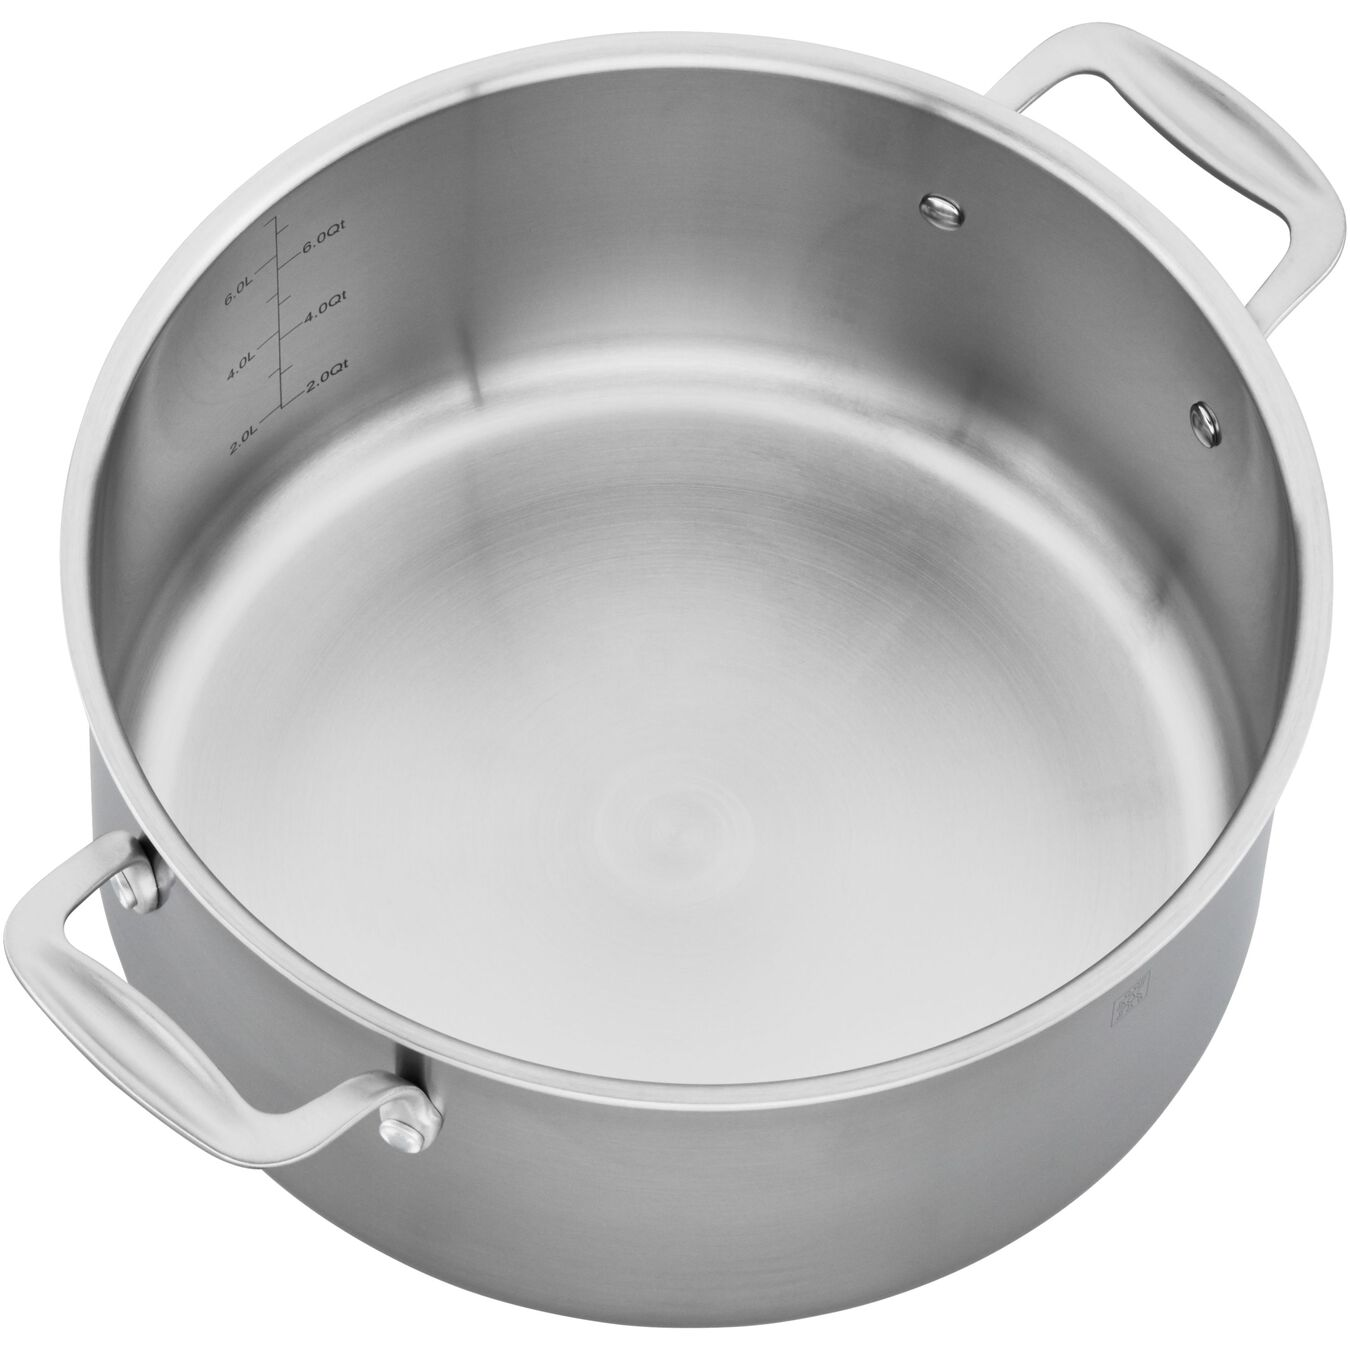 18/10 Stainless Steel, 8 qt, 18/10 Stainless Steel, Stock pot,,large 3